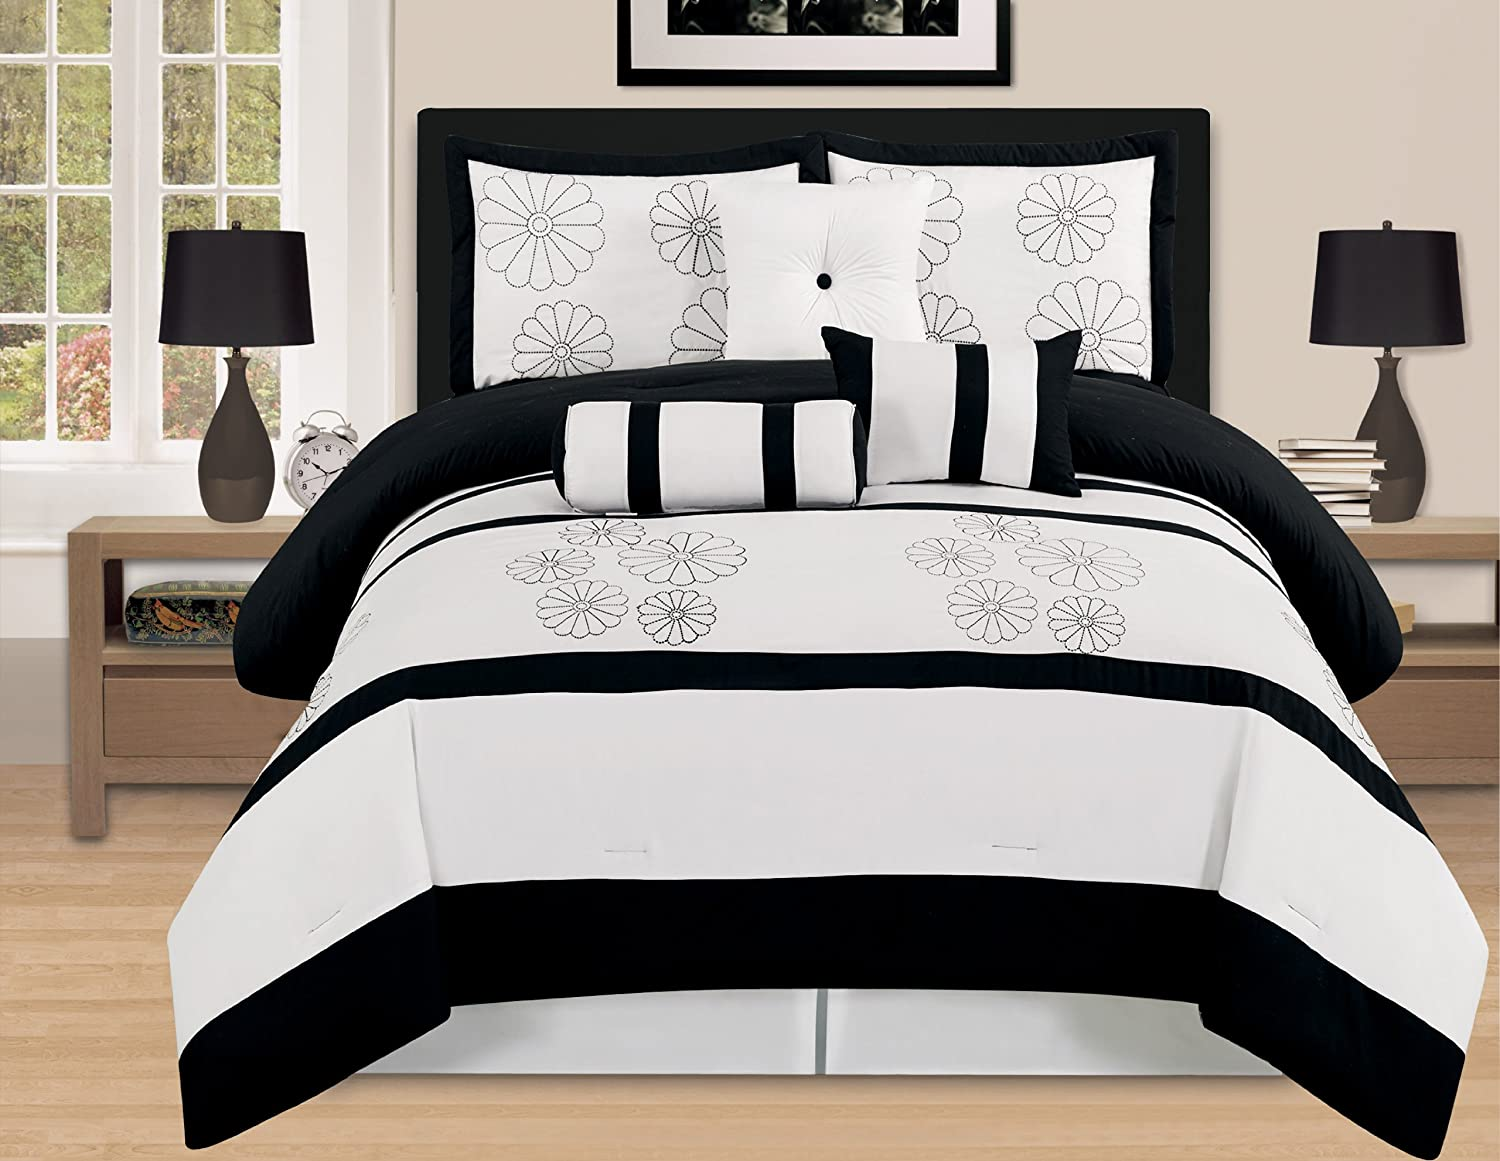 7 Pieces Luxury Embroidery Comforter Set Bed-in-a-bag King (102\x92\) Size Bedding (Black/White) Ahf